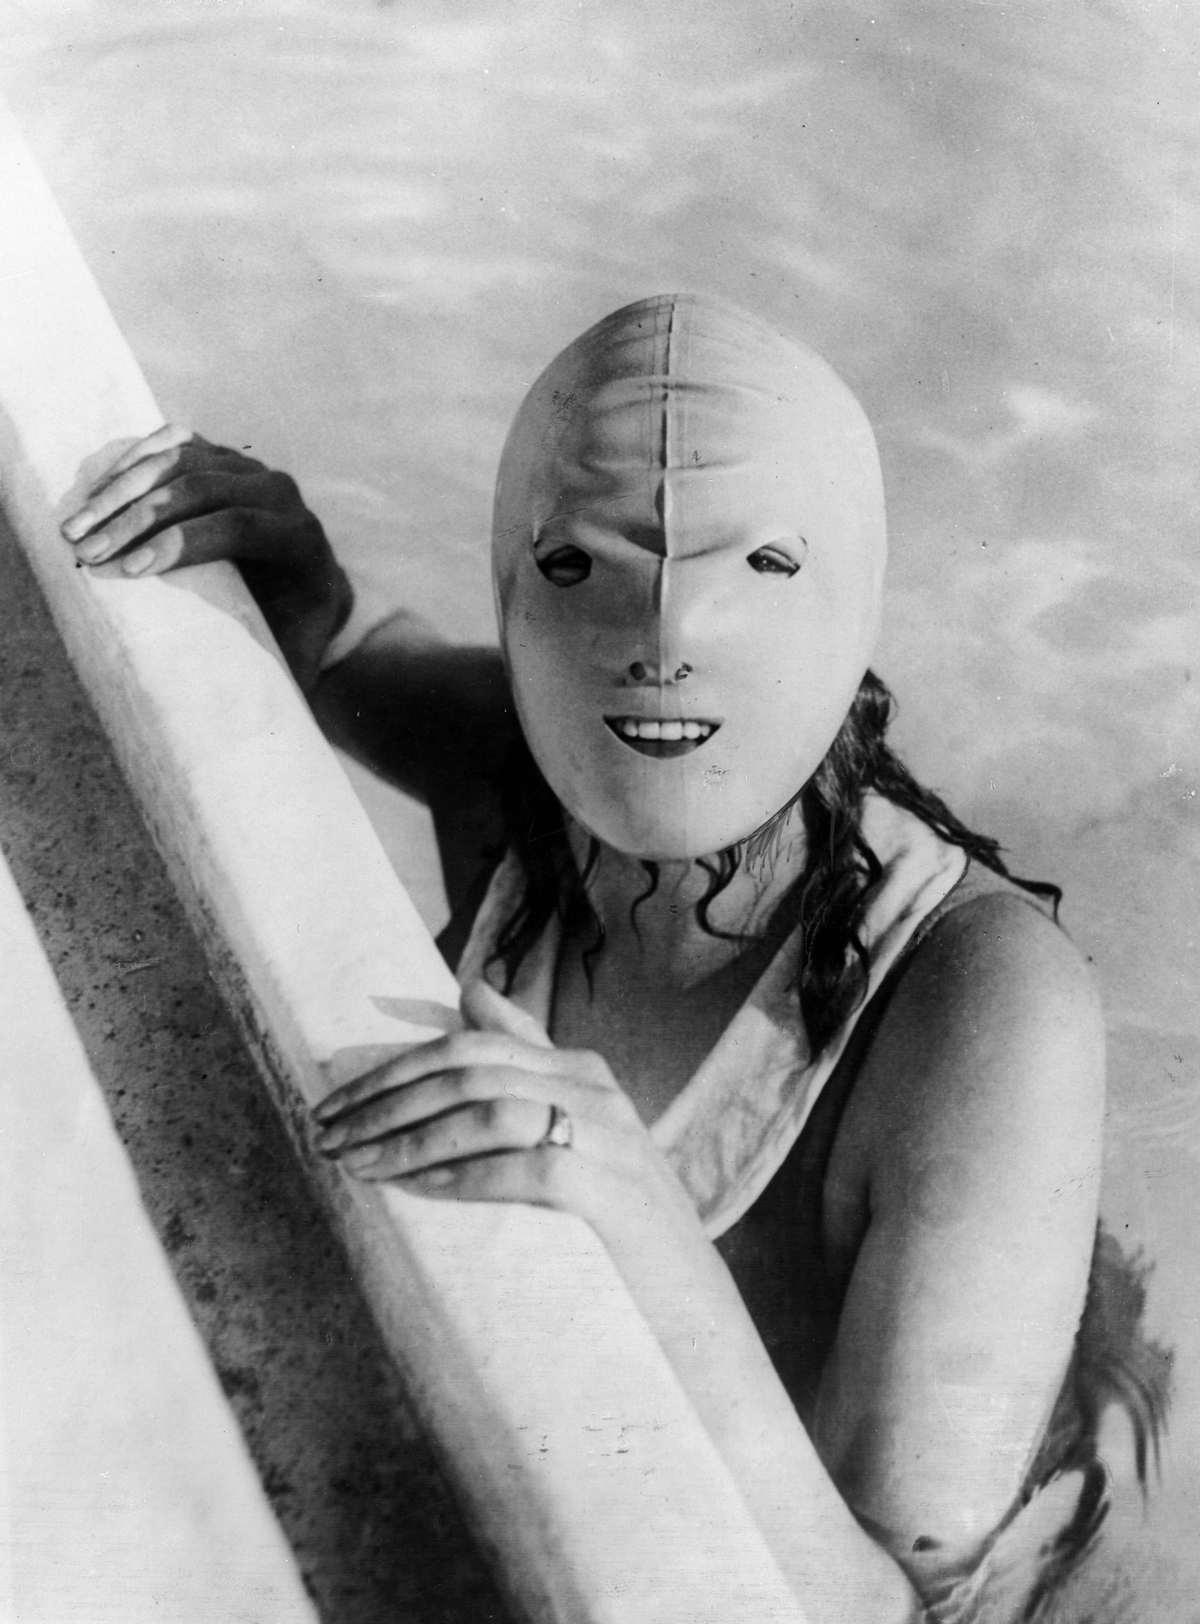 Full face swimming mask, designed to protect the wearers face from the harmful effects of the sun, 1920s (via Retronaut)